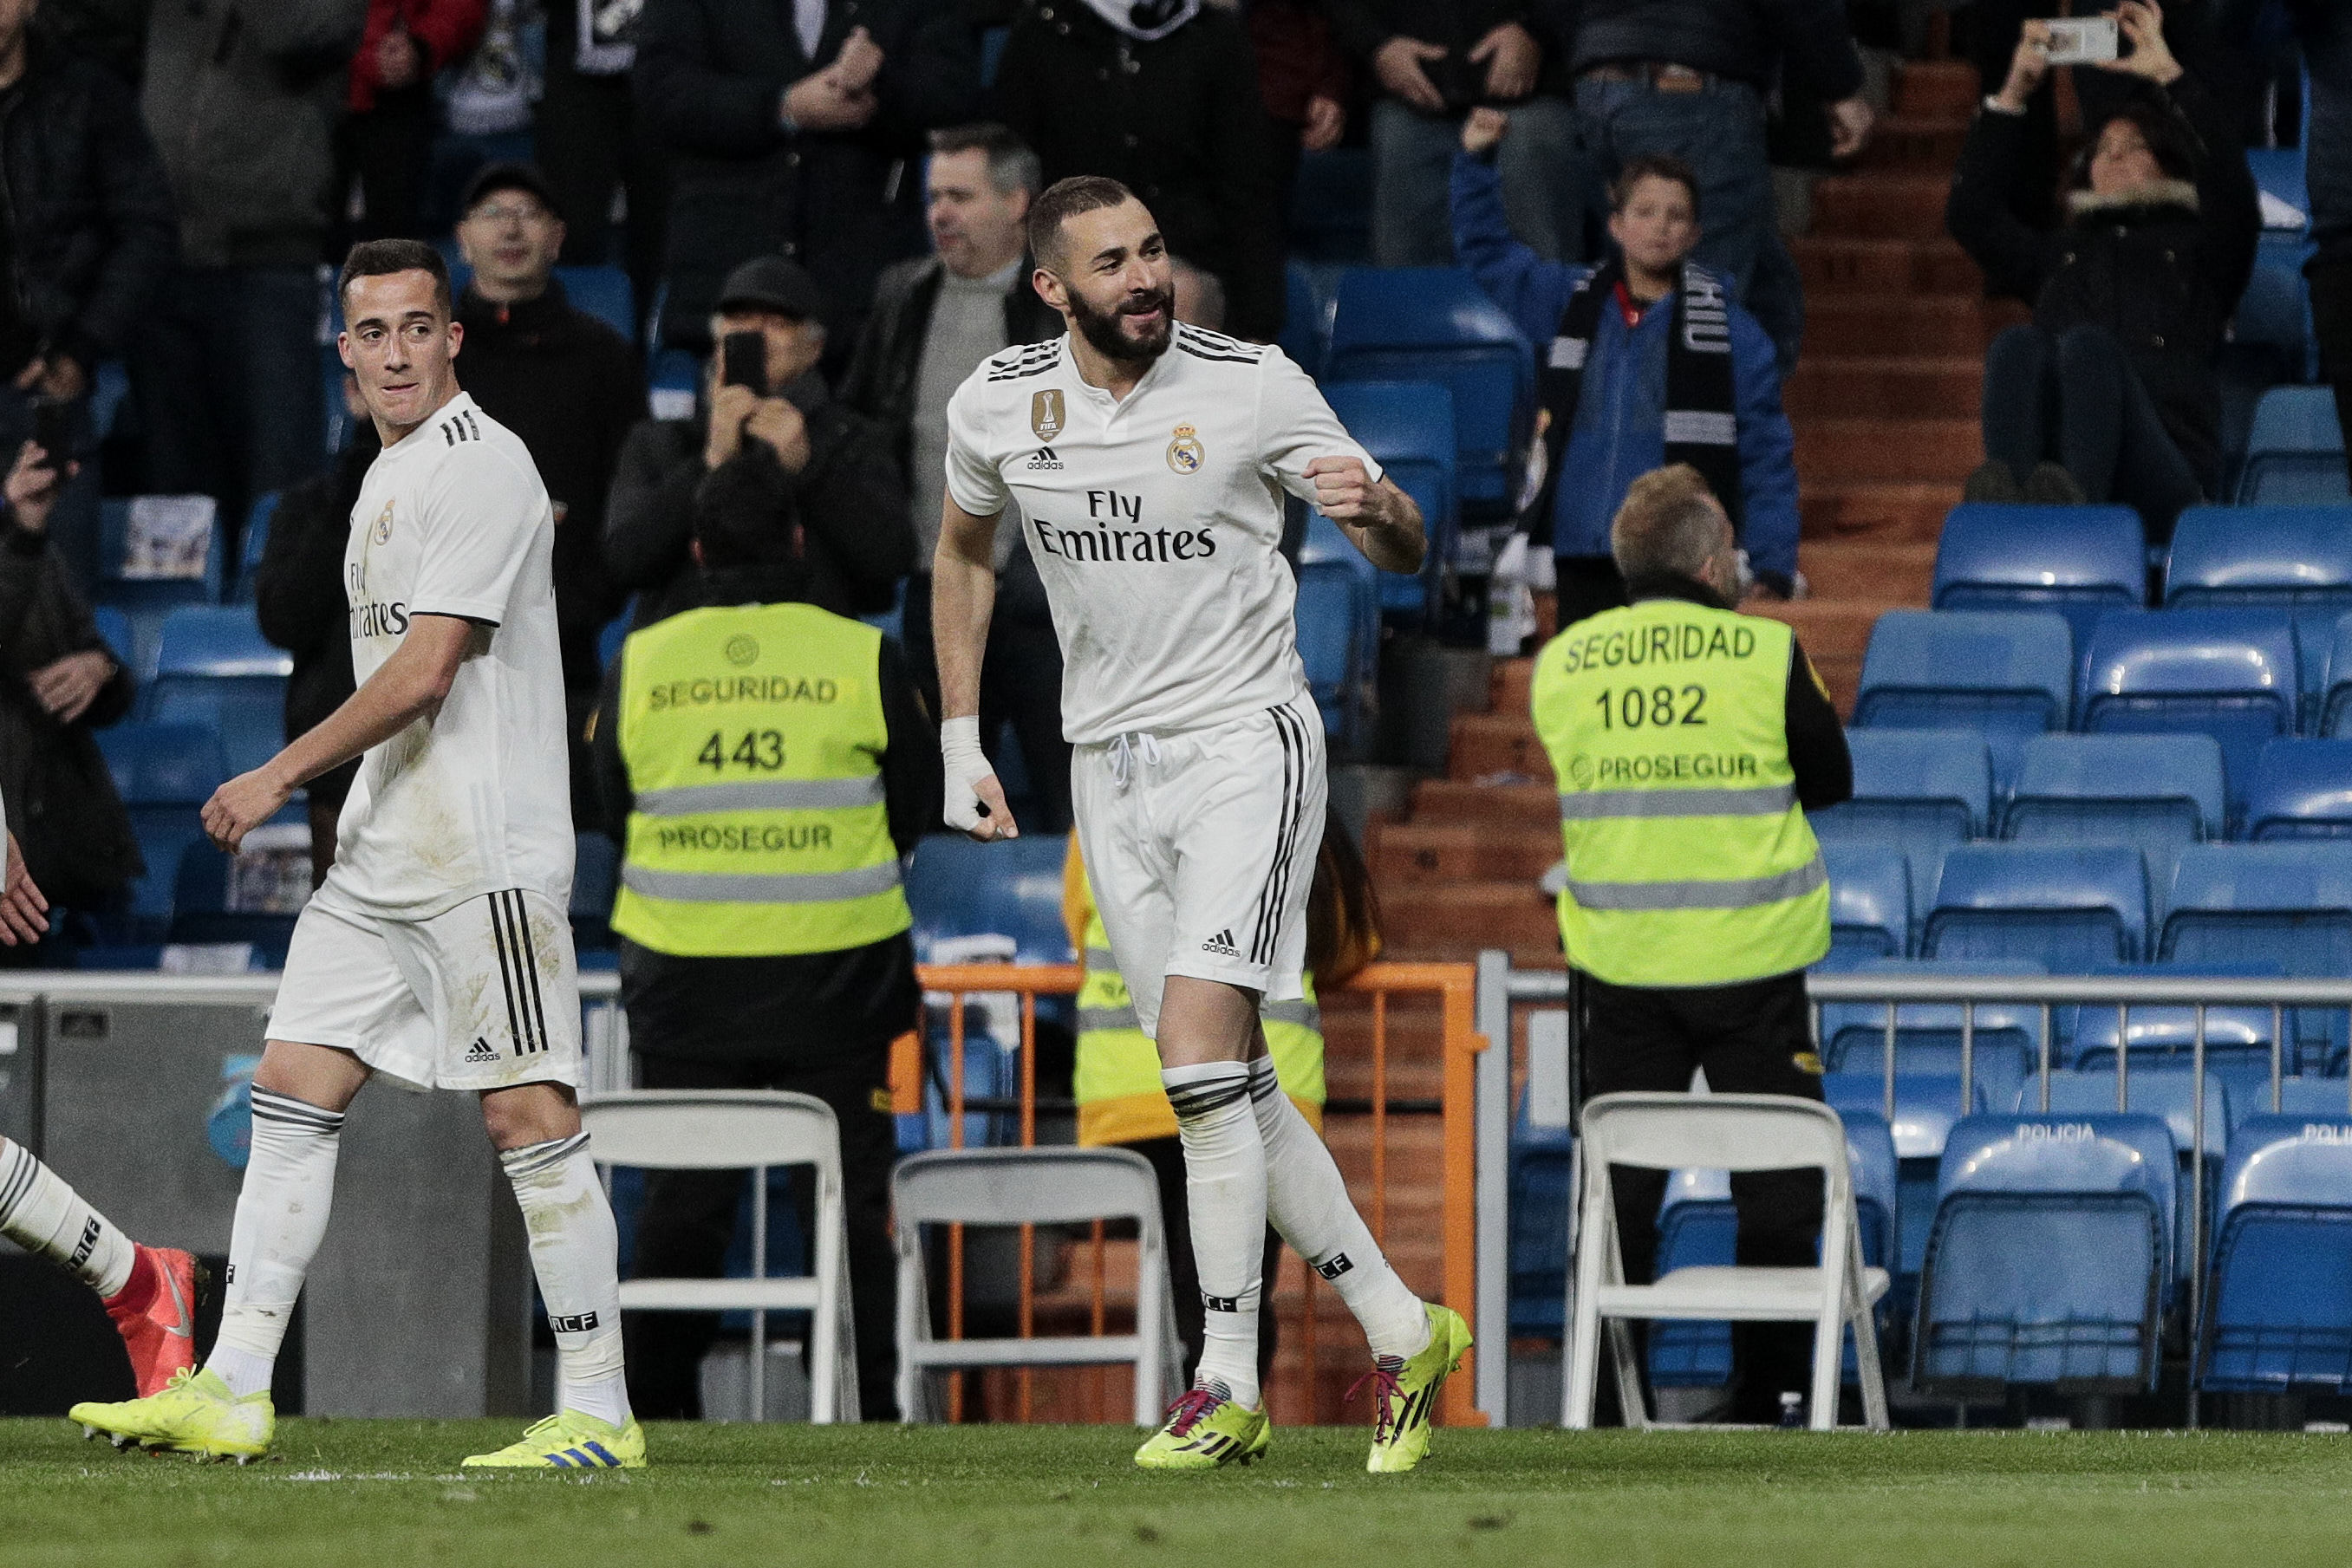 Benzema celebrates his winner on Sunday. Image: PA Images